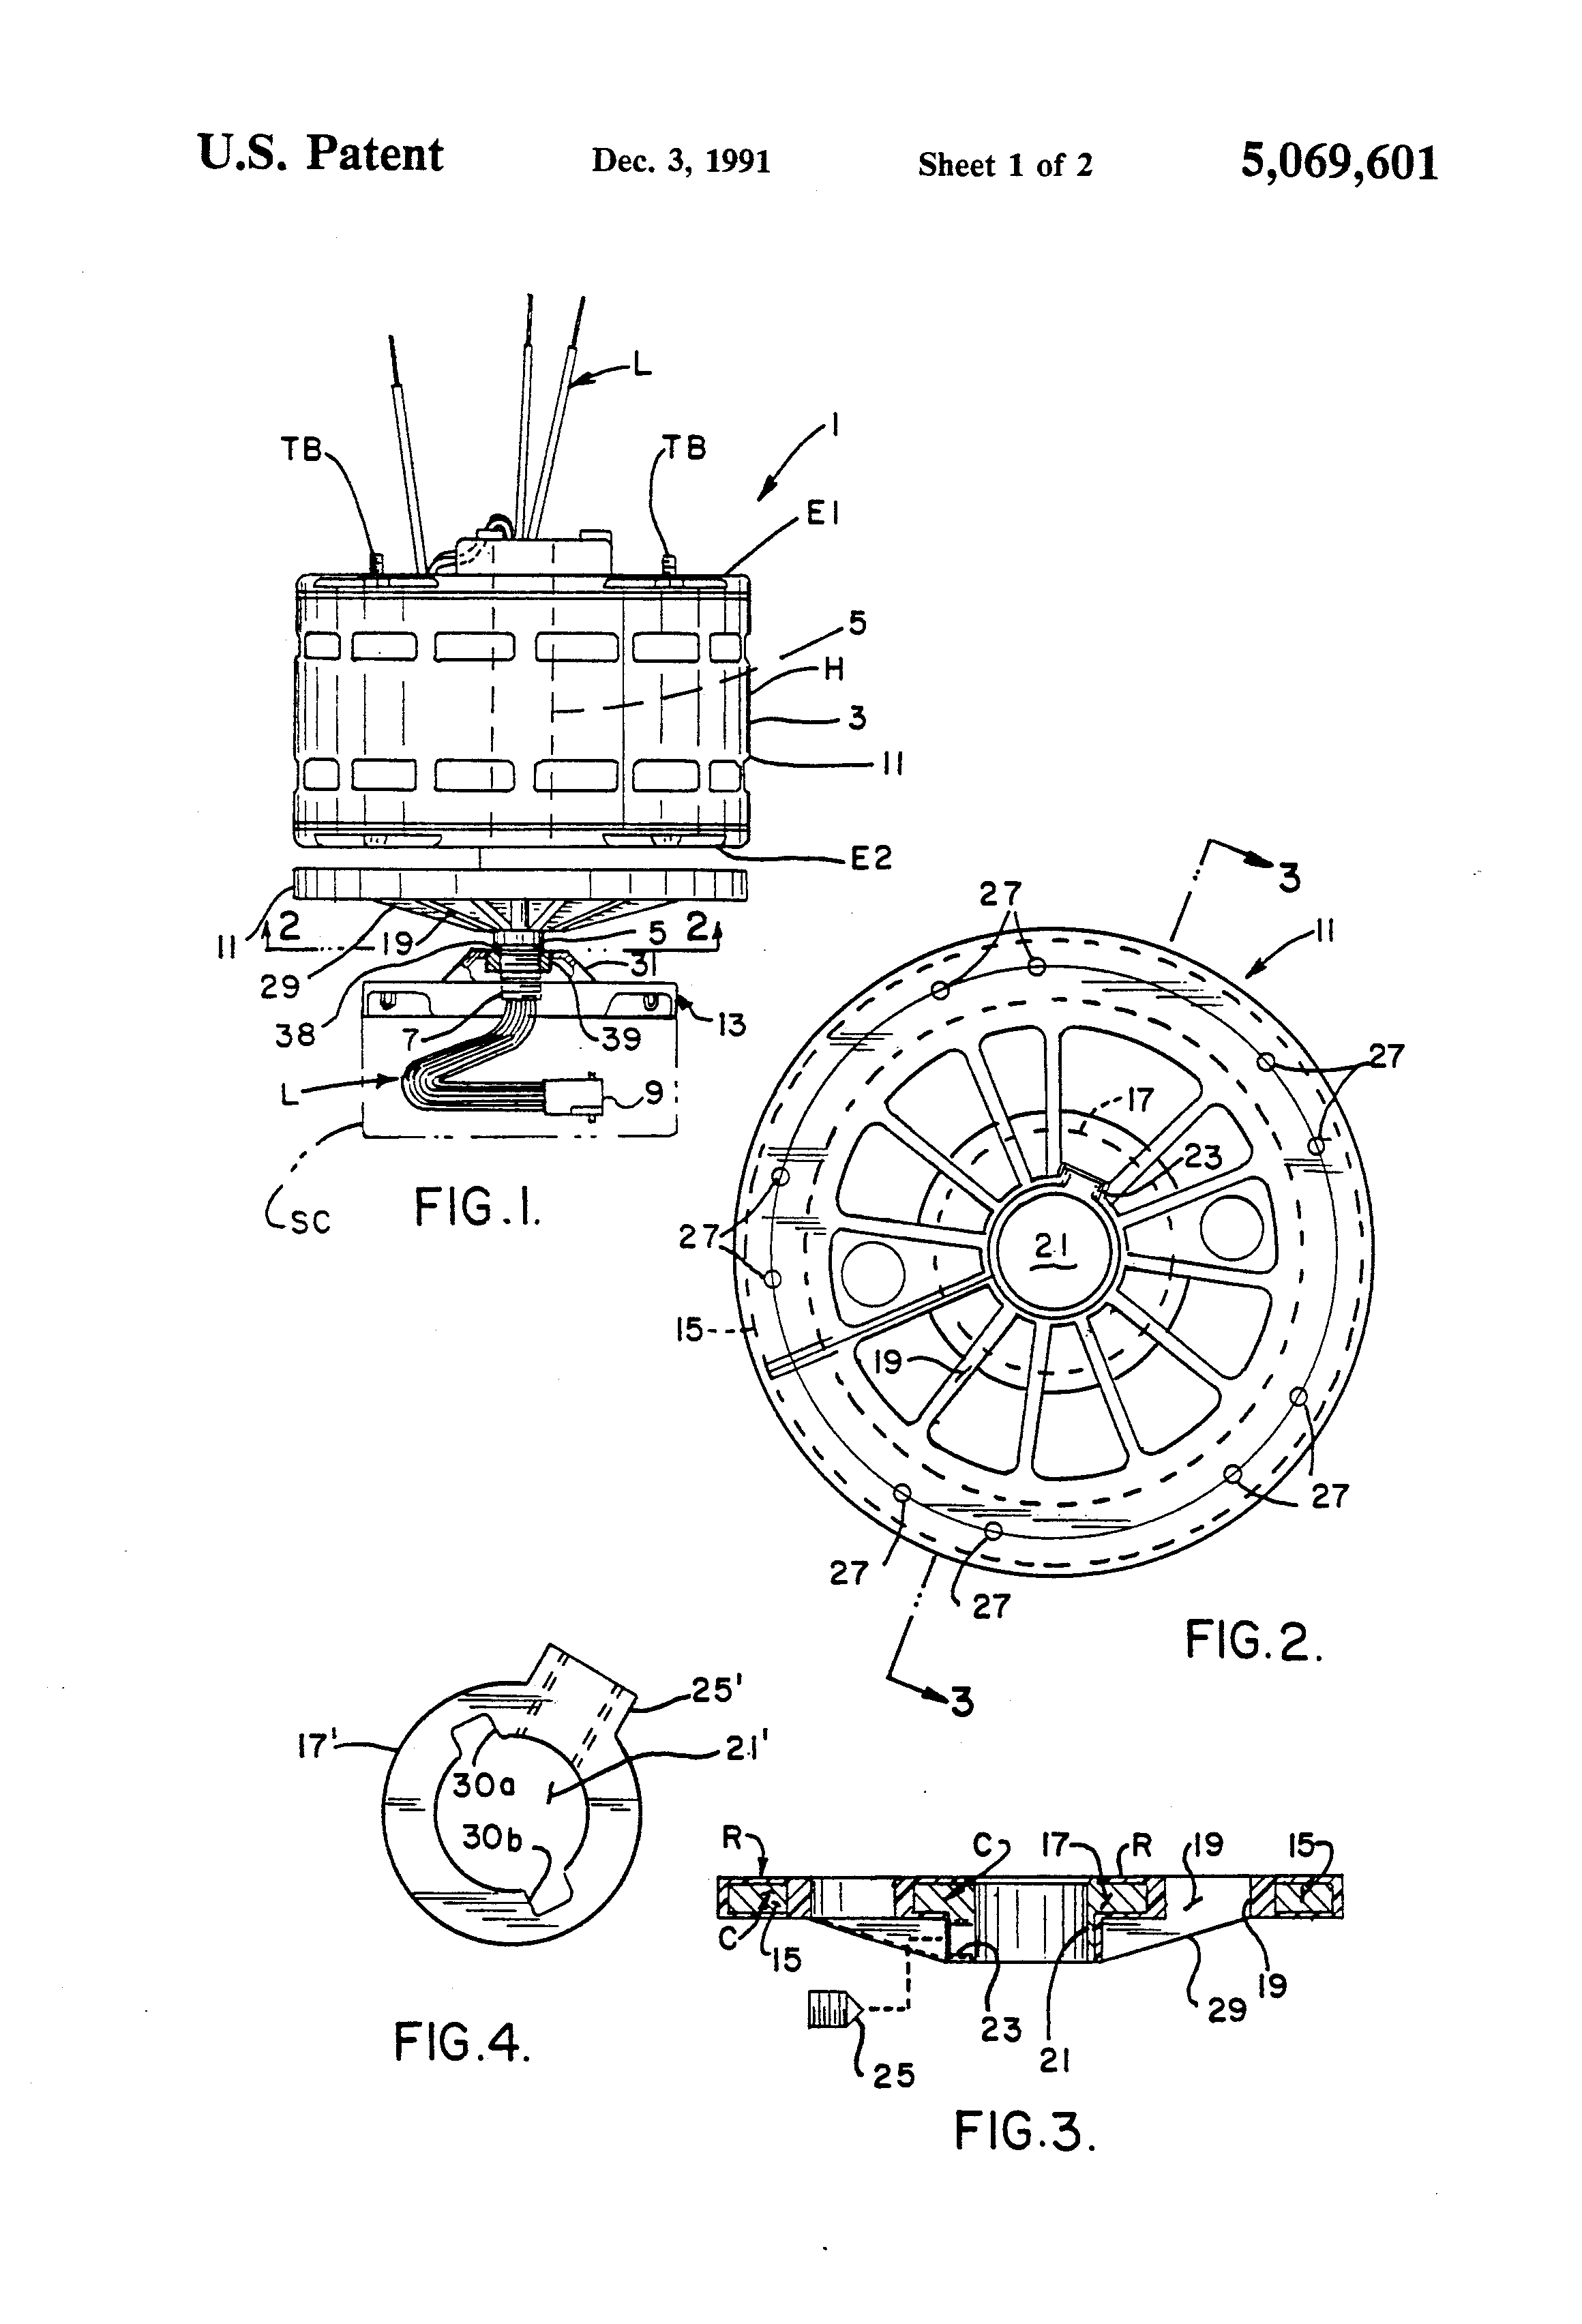 Shaft Driven Ceiling Fan : Patent us ceiling fan with removable hub google